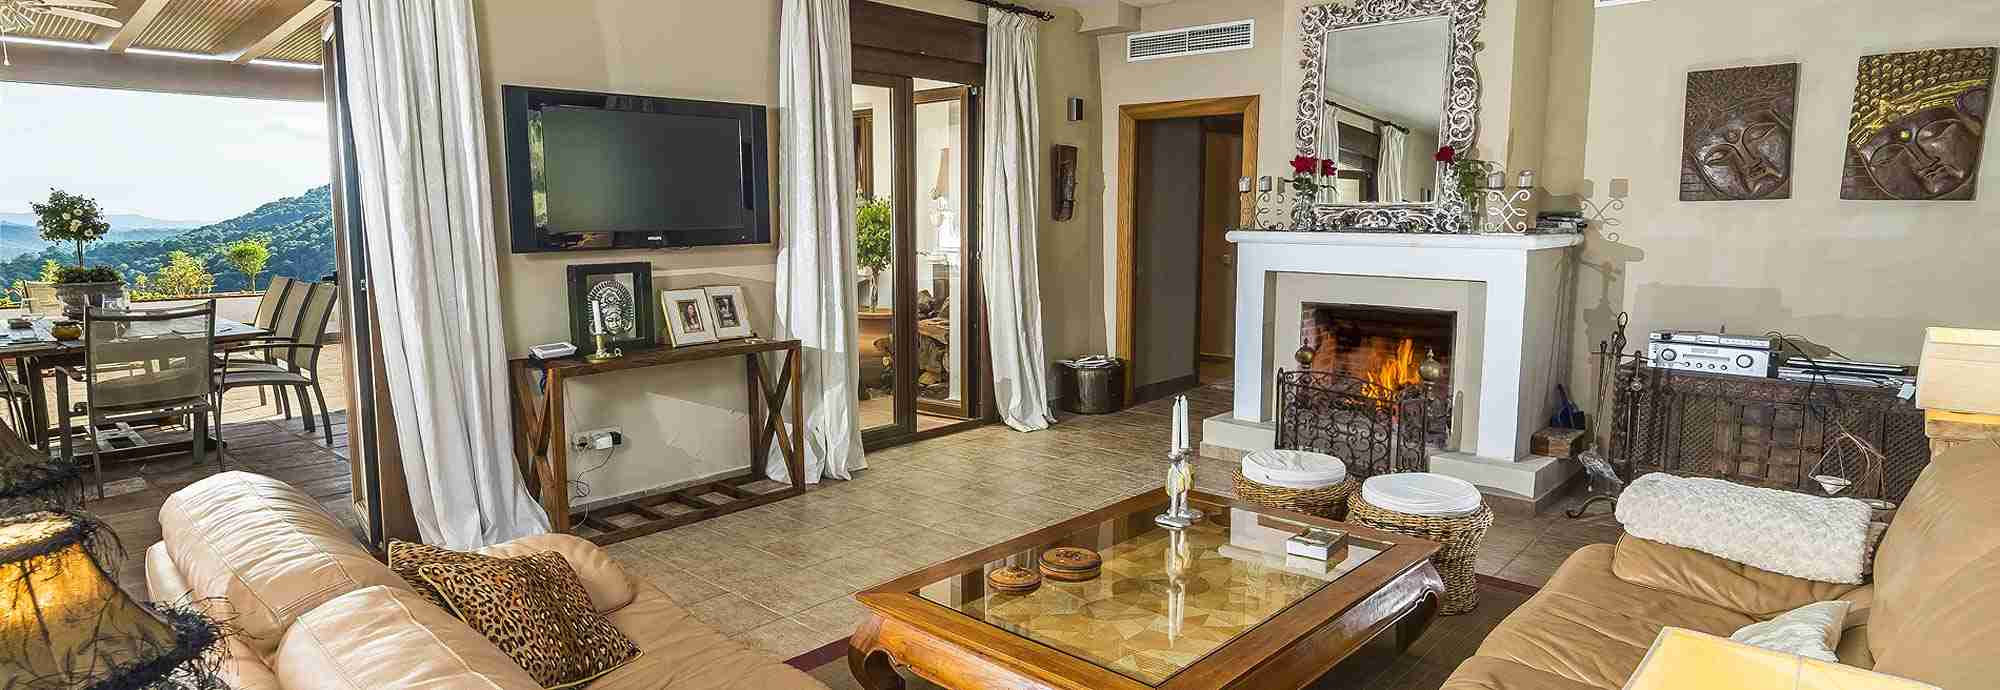 Large Holiday  Villas in Andalucia